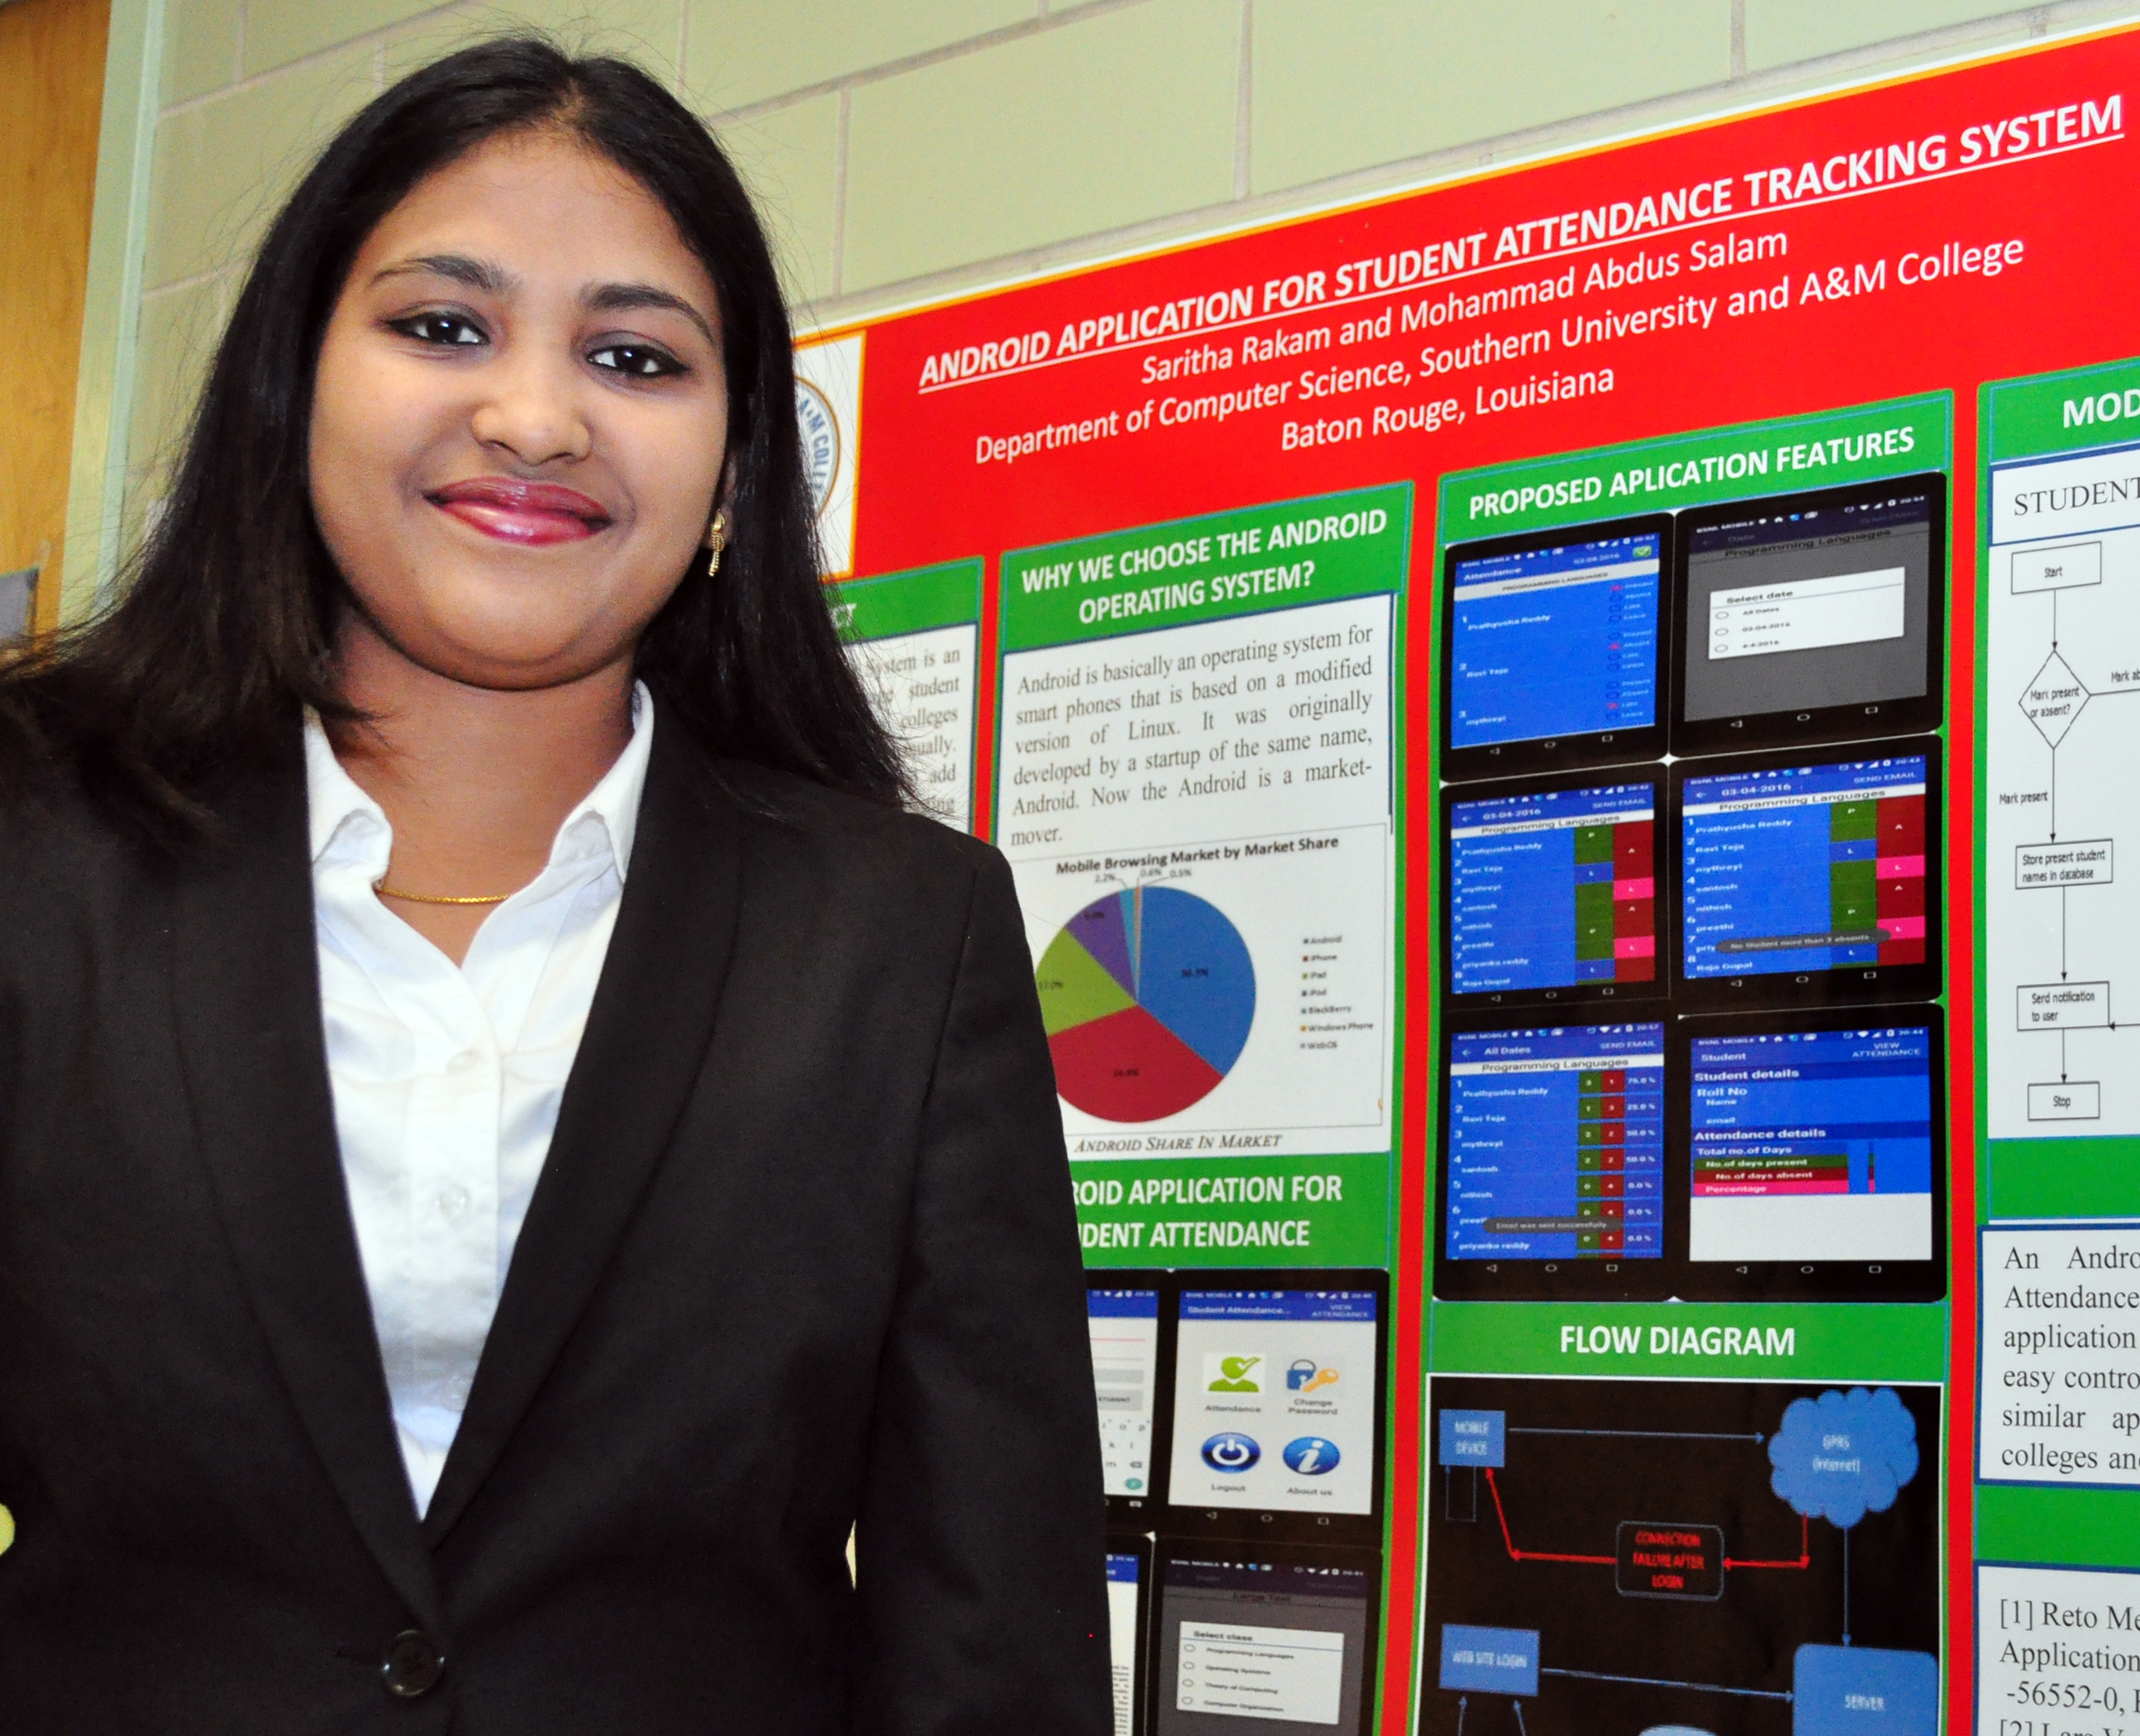 SUBR computer science graduate student Saritha Rakam won a best graduate poster presentation award during the 90th Annual Meeting of the Louisiana Academy of Sciences at Louisiana State University Alexandria, April 23, 2016.